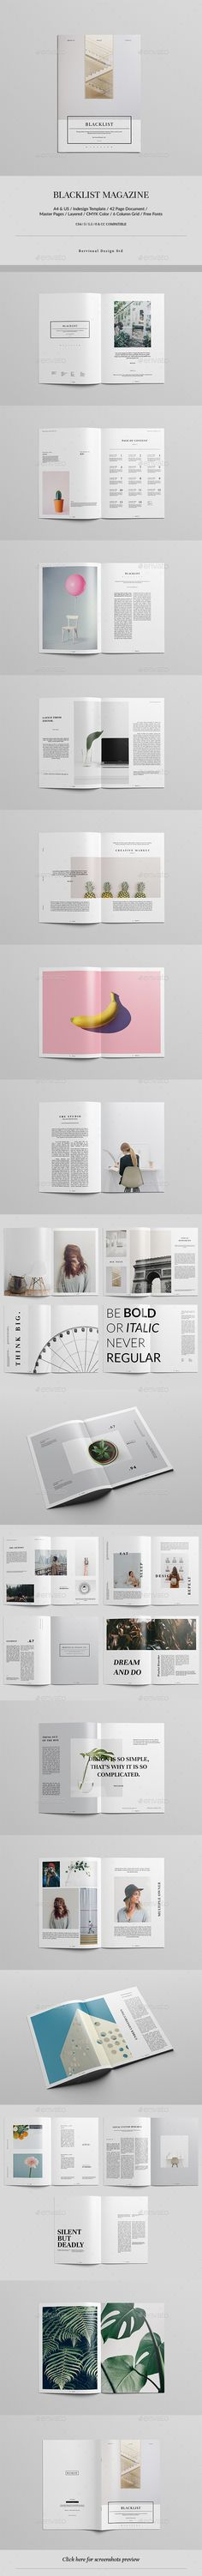 Blacklist Magazine / Lookbook — InDesign INDD #article #trend • Download ➝ https://graphicriver.net/item/blacklist-magazine-lookbook/19235307?ref=pxcr